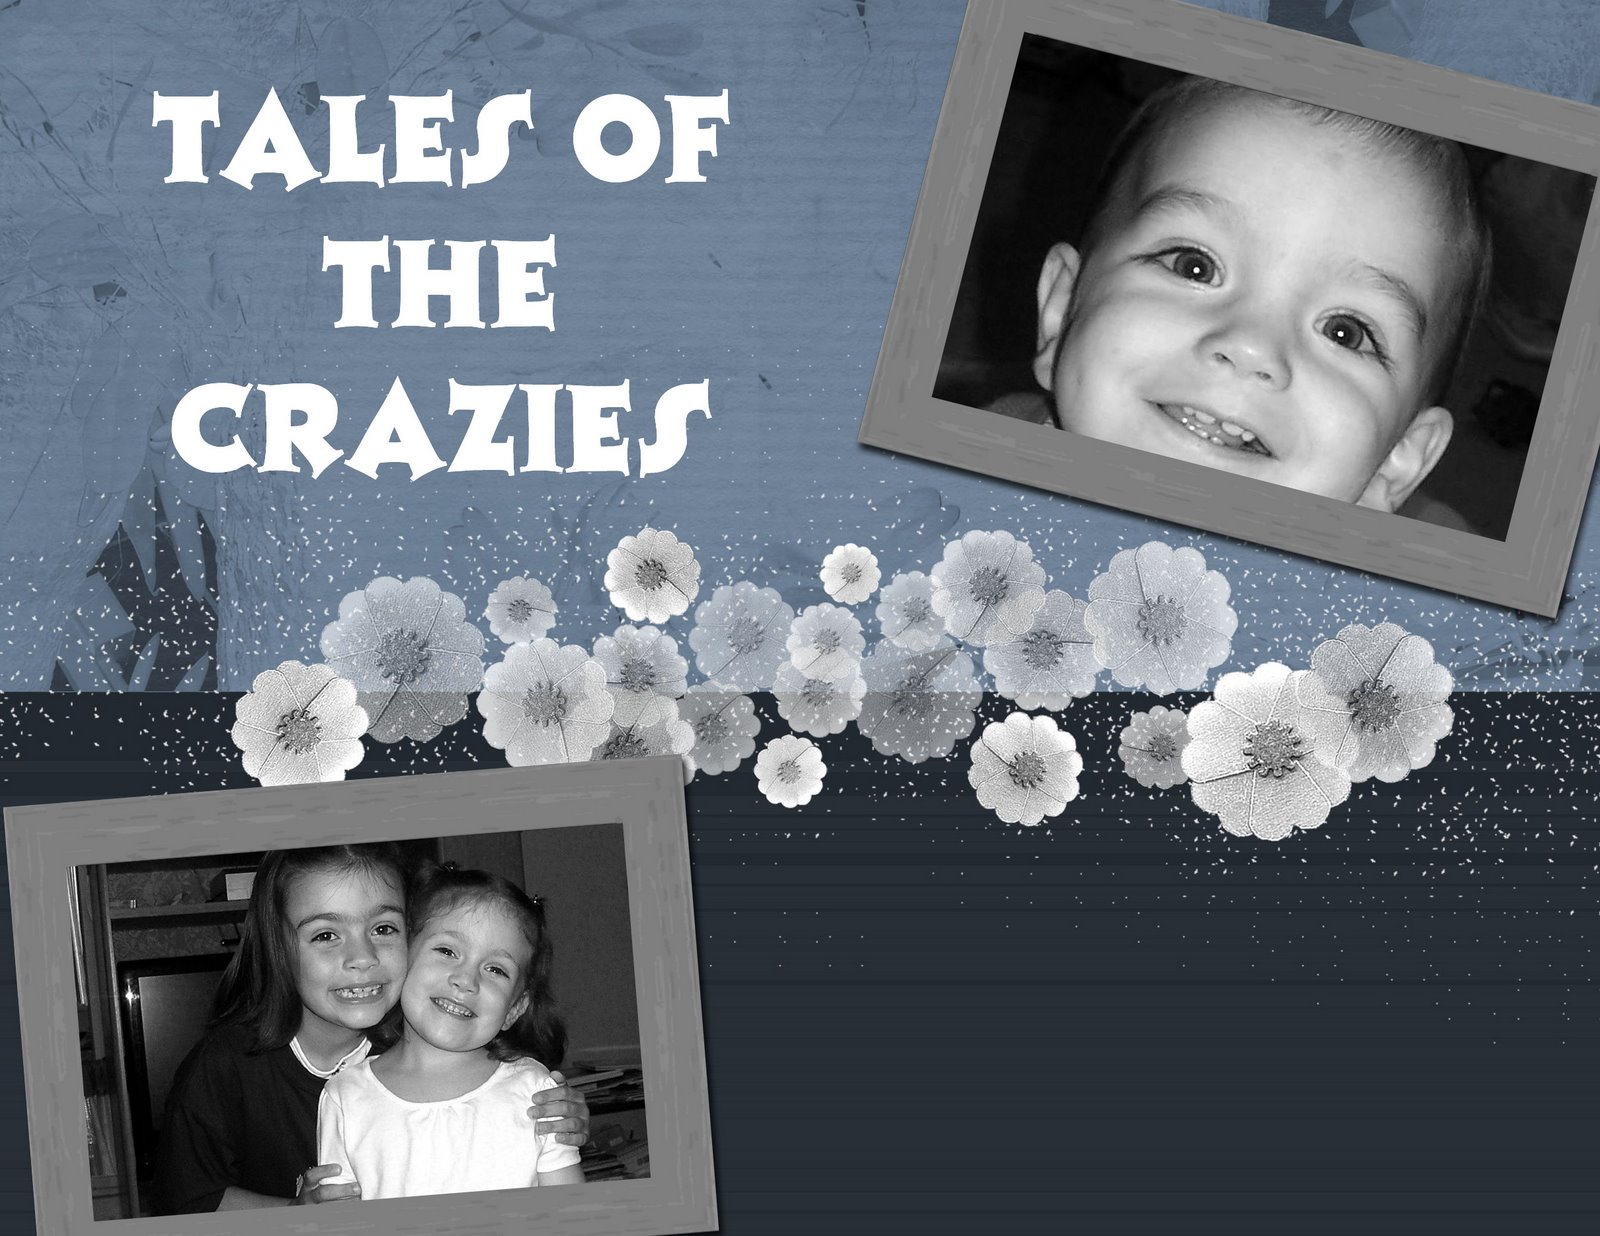 Tales of the crazies